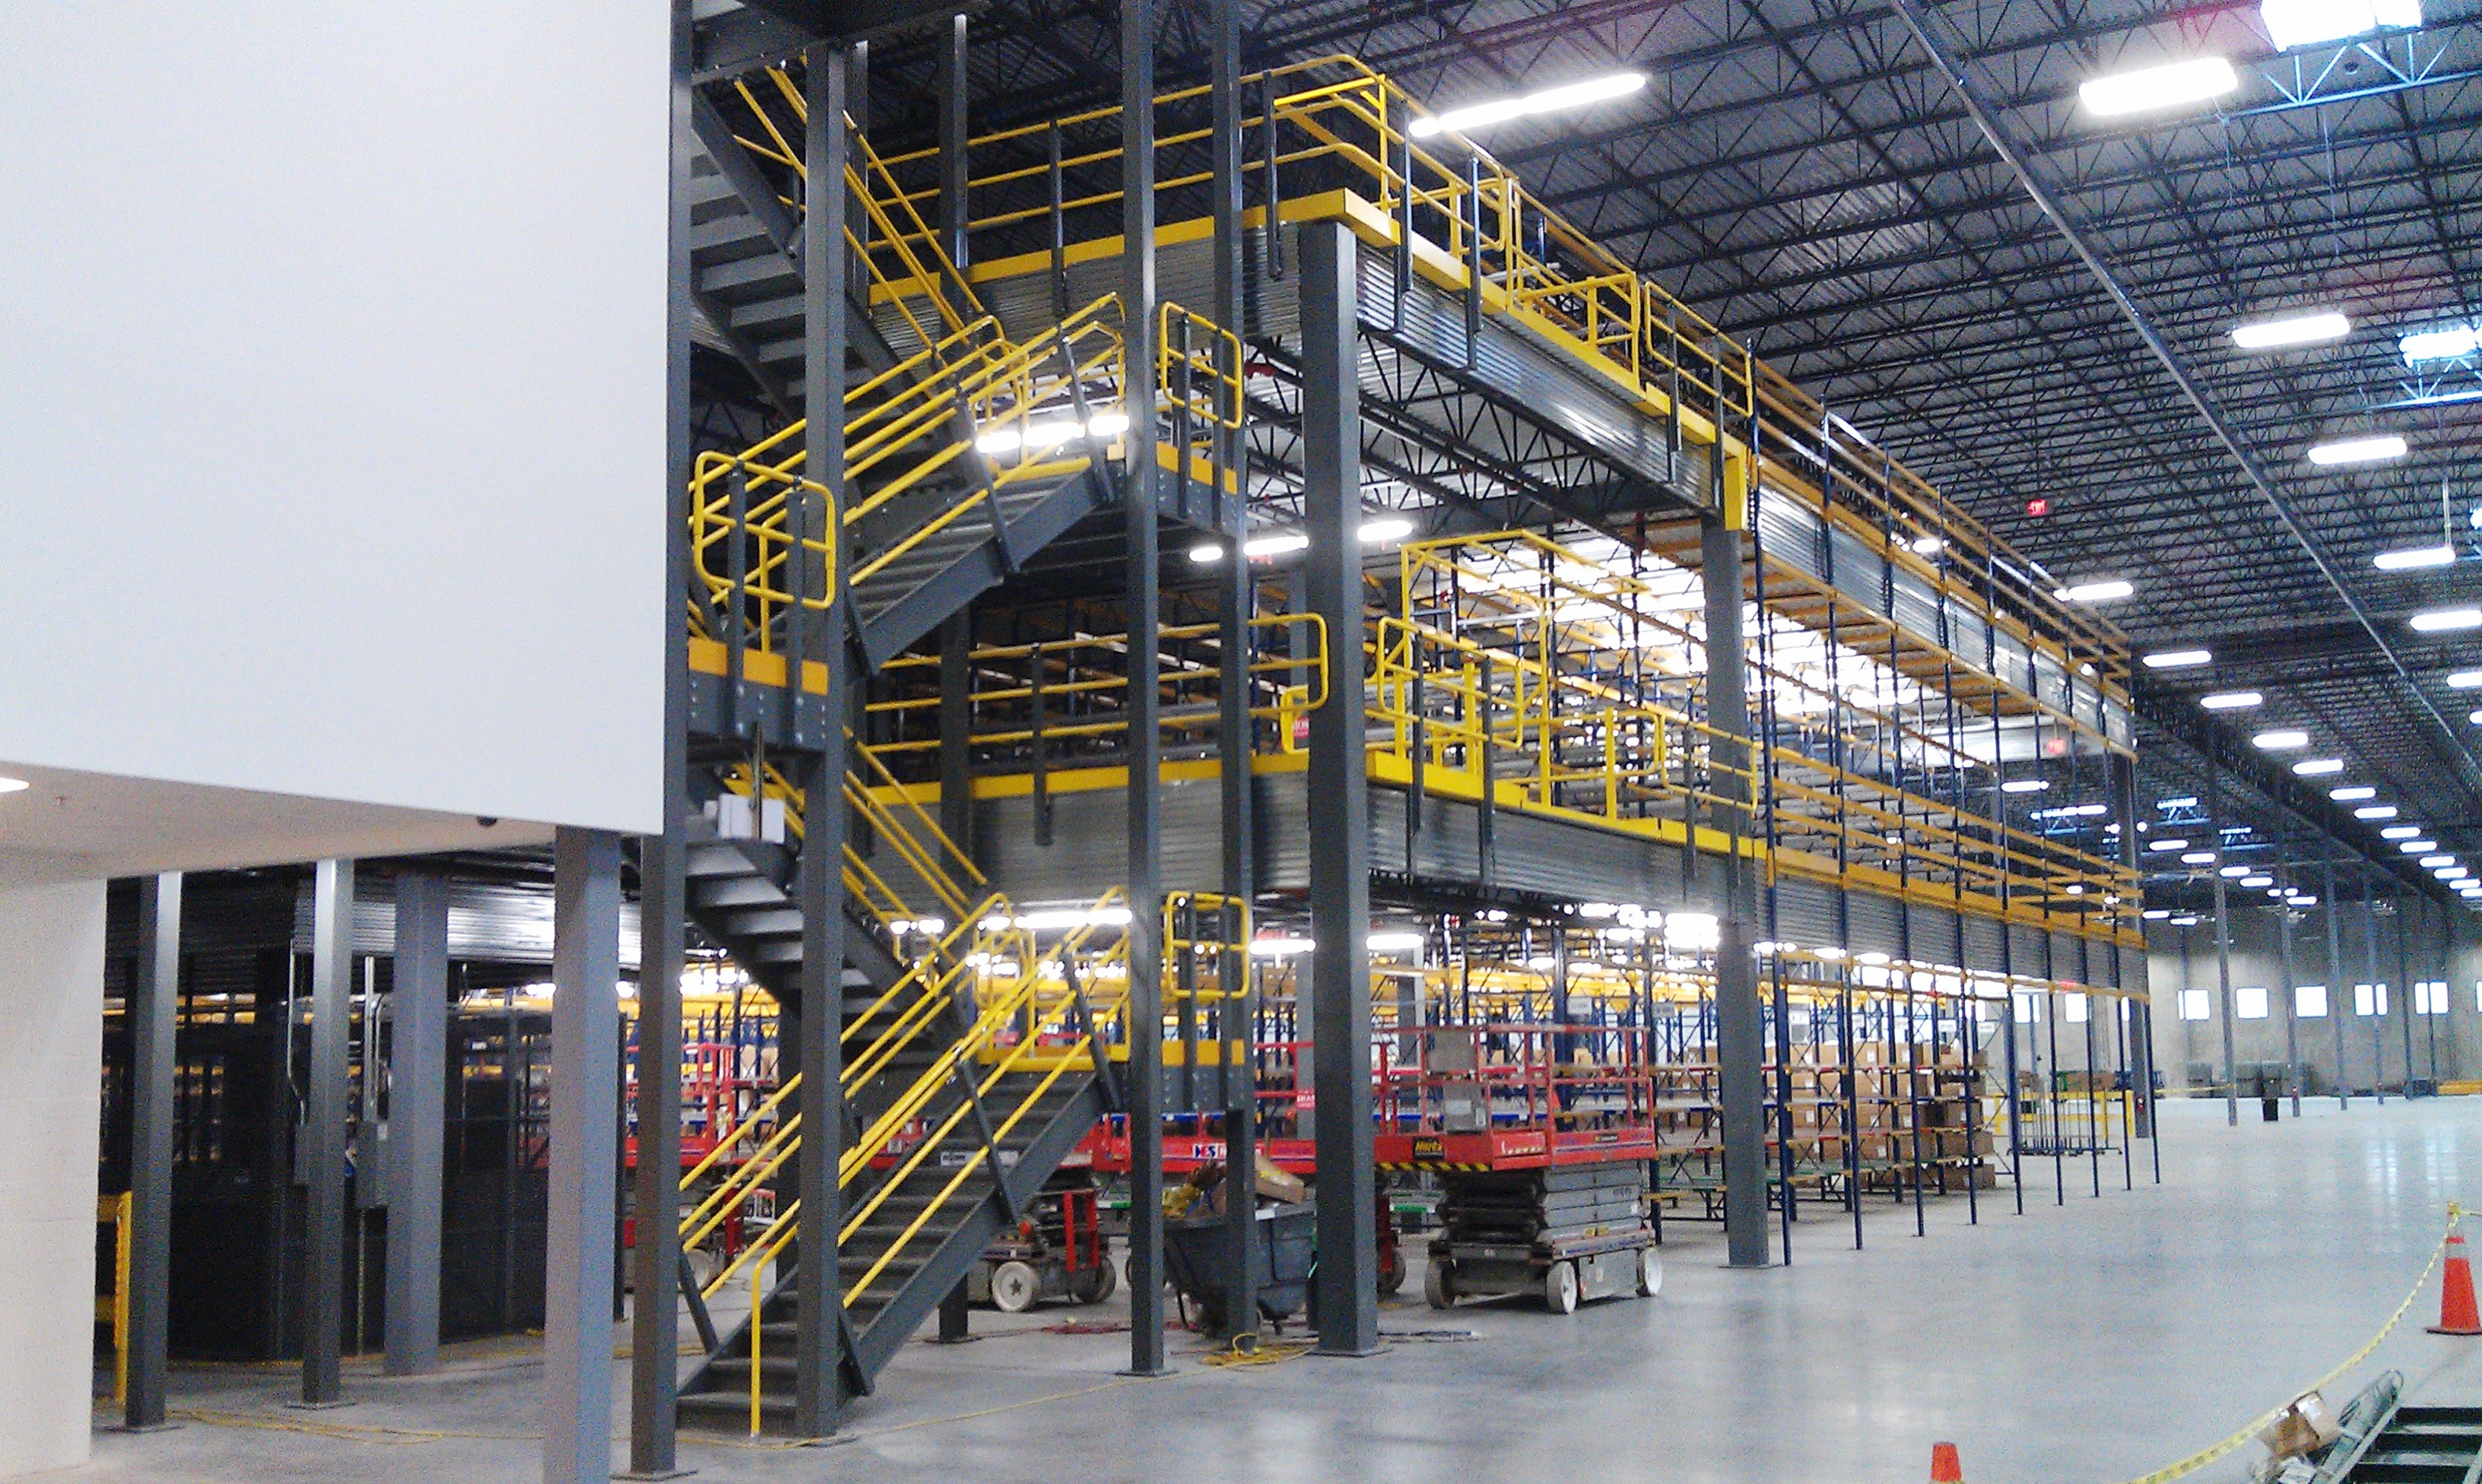 Mezzanines Warehouse Design